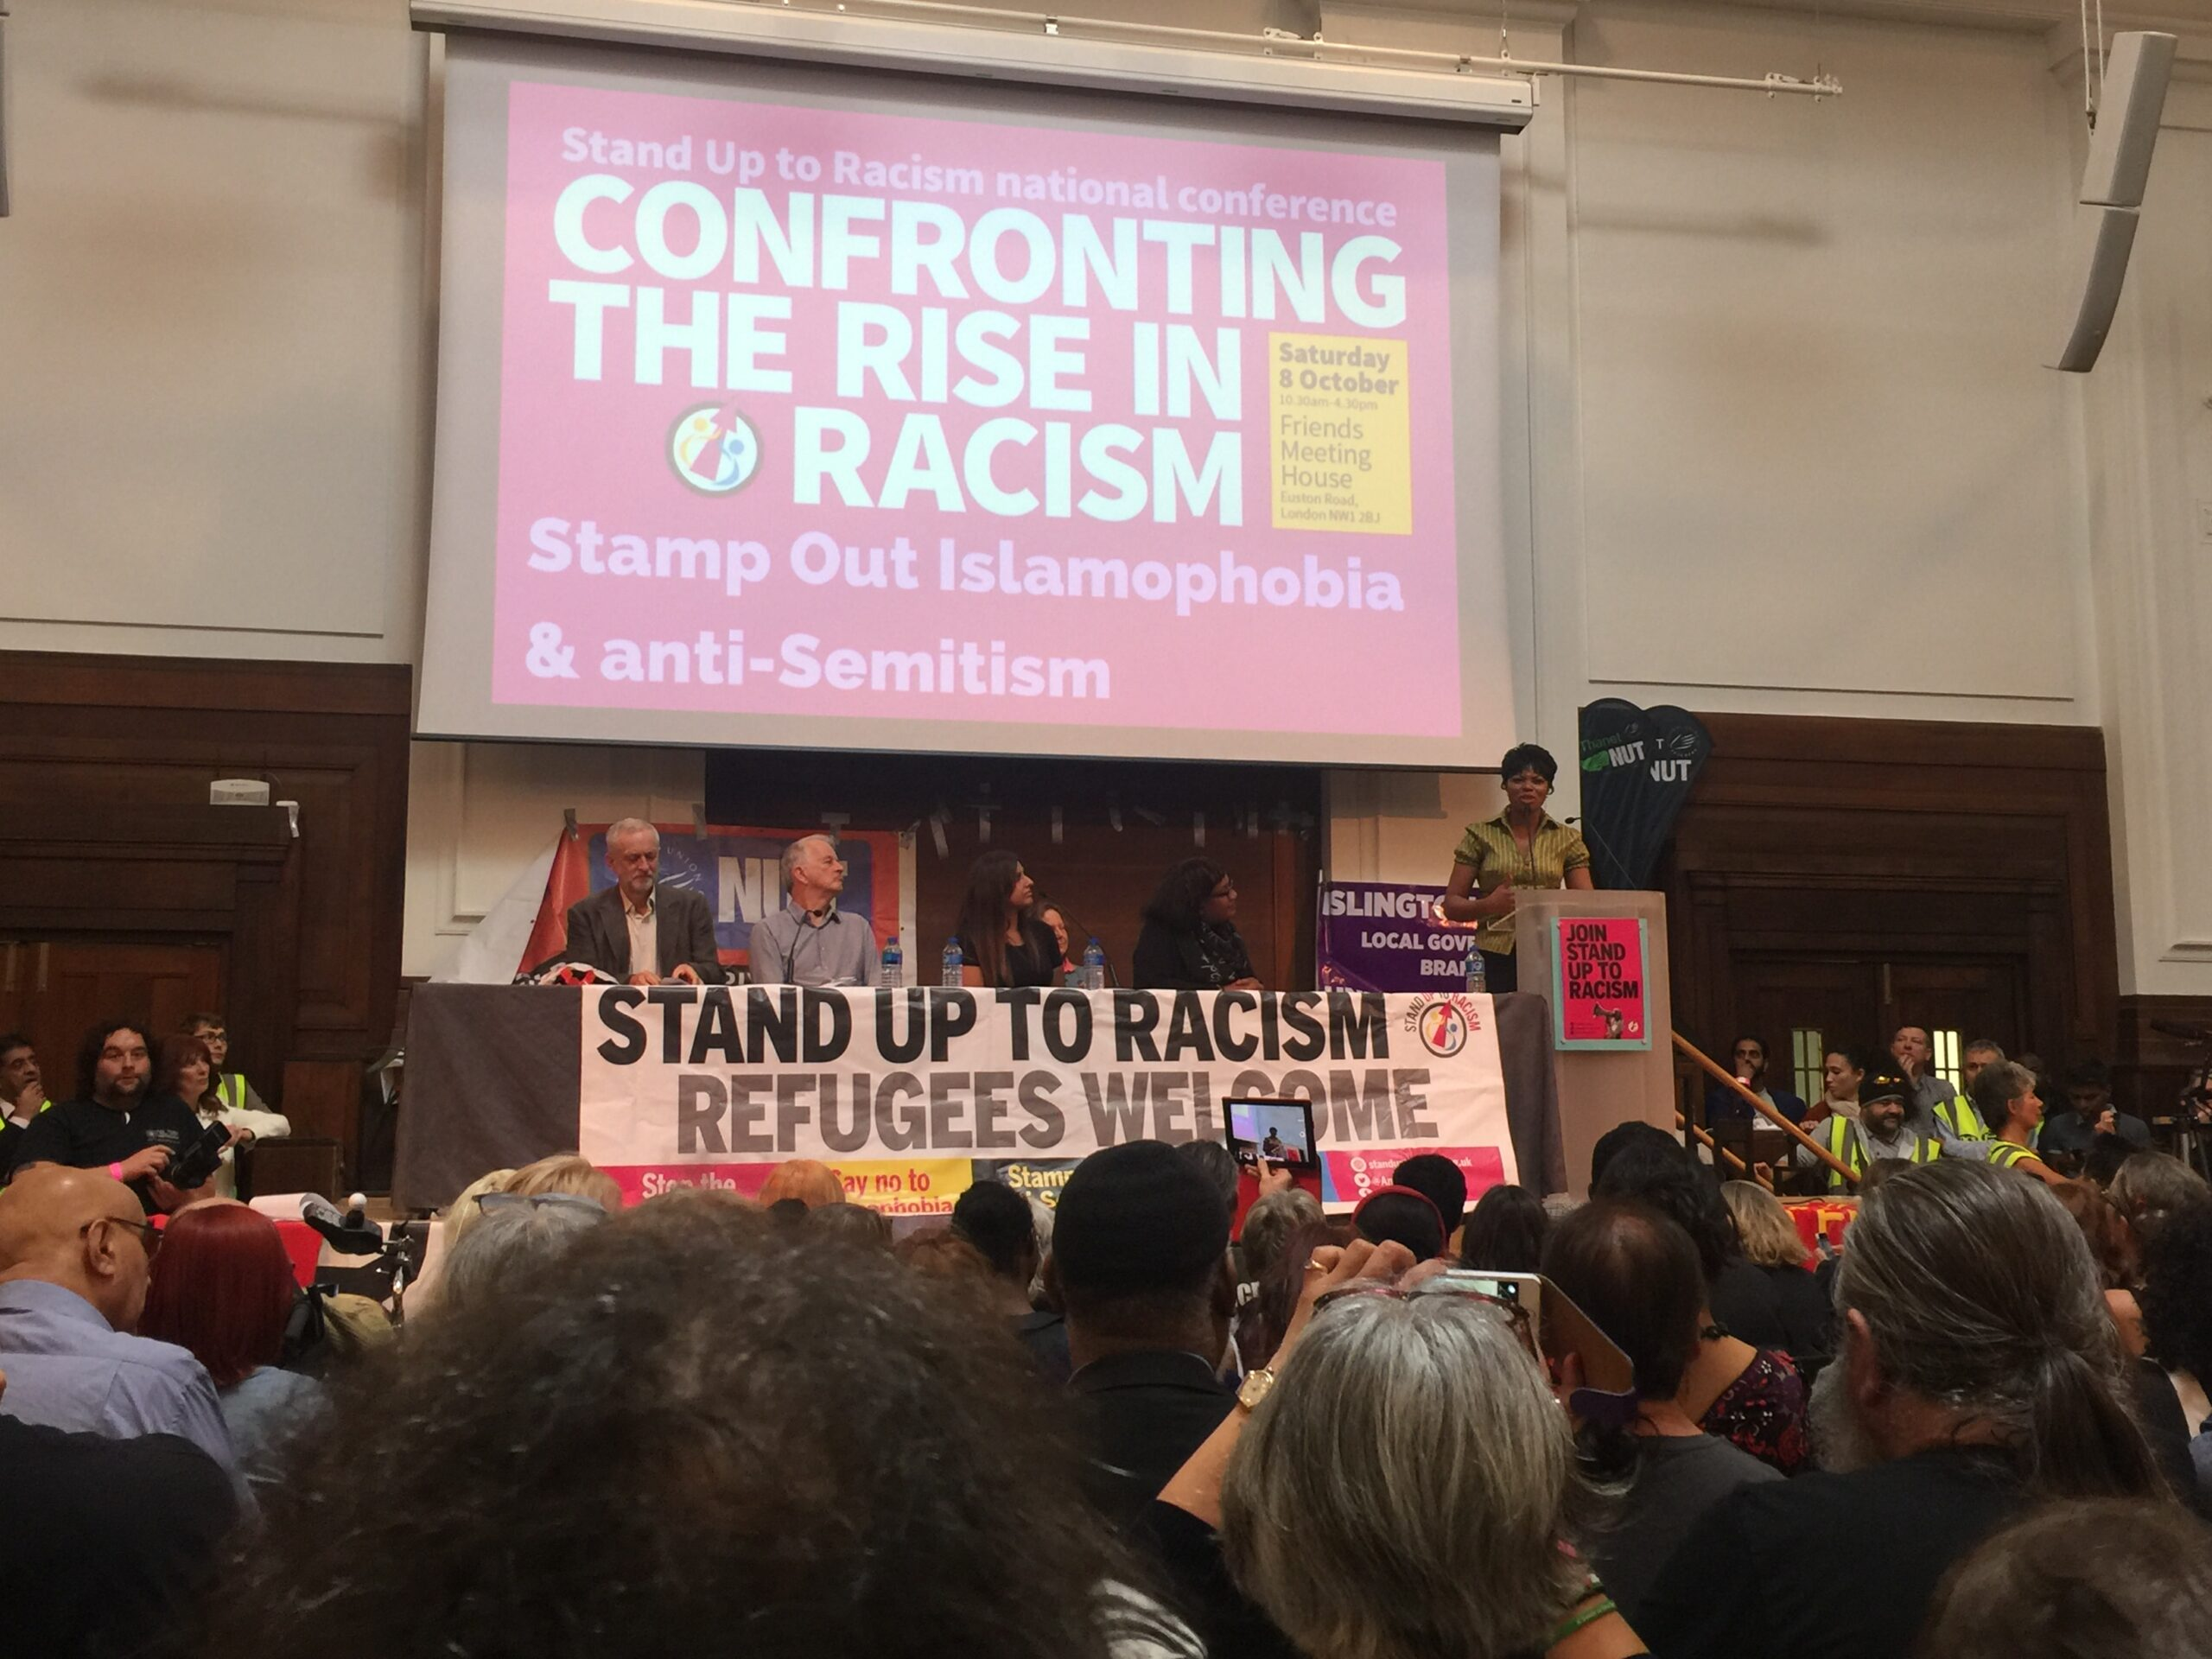 Black Lives Matter Movement at huge Stand Up To Racism conference